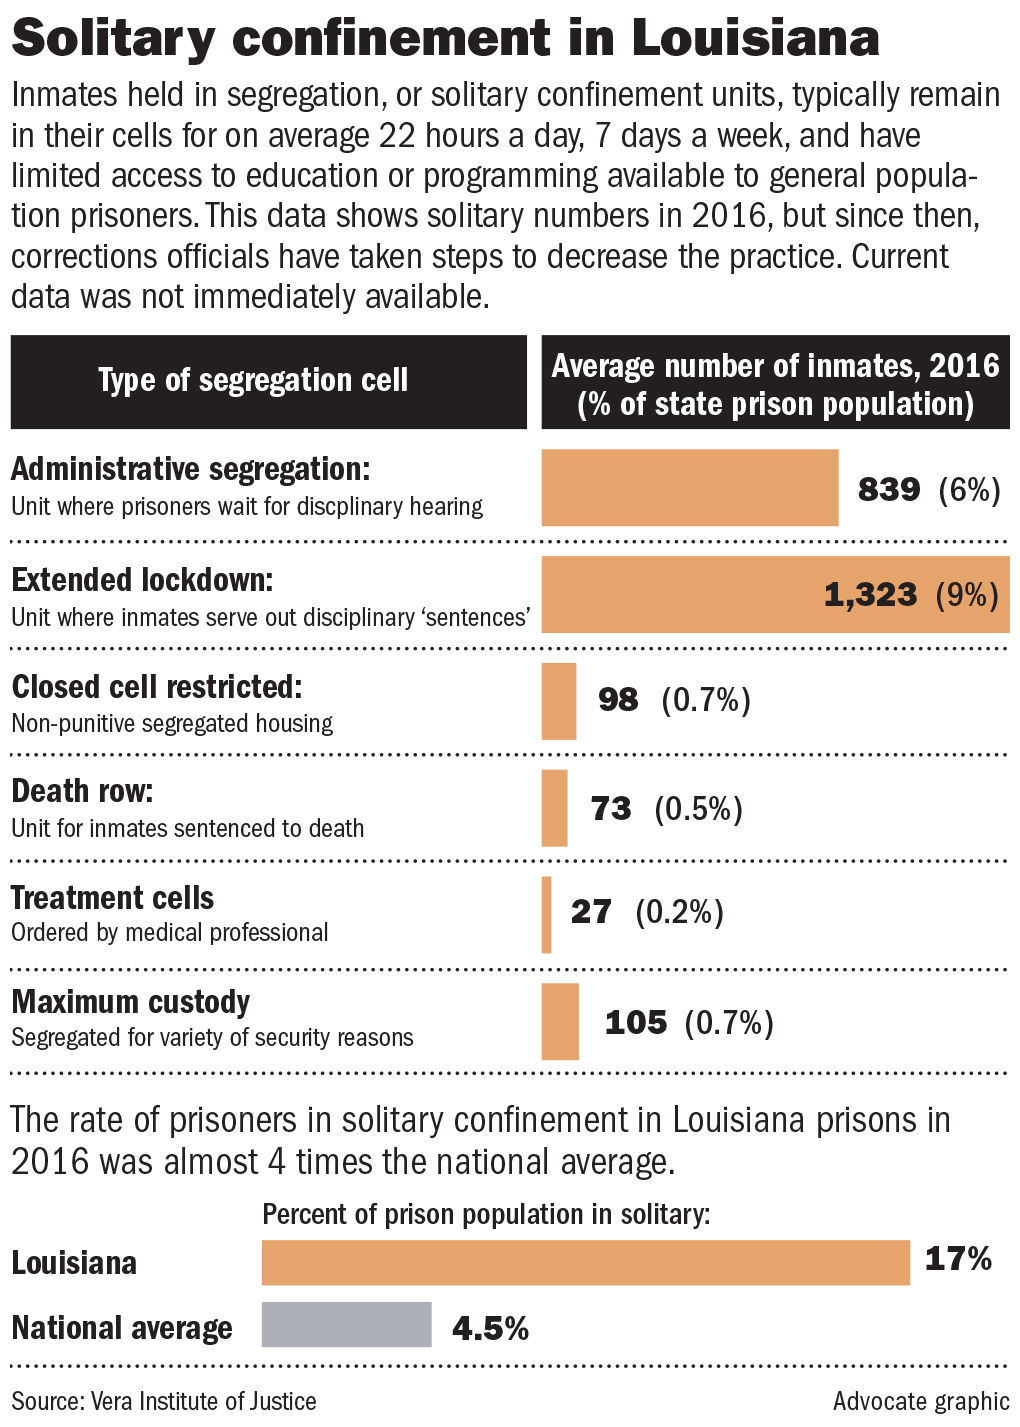 Louisiana prisons over-rely on solitary confinement, report